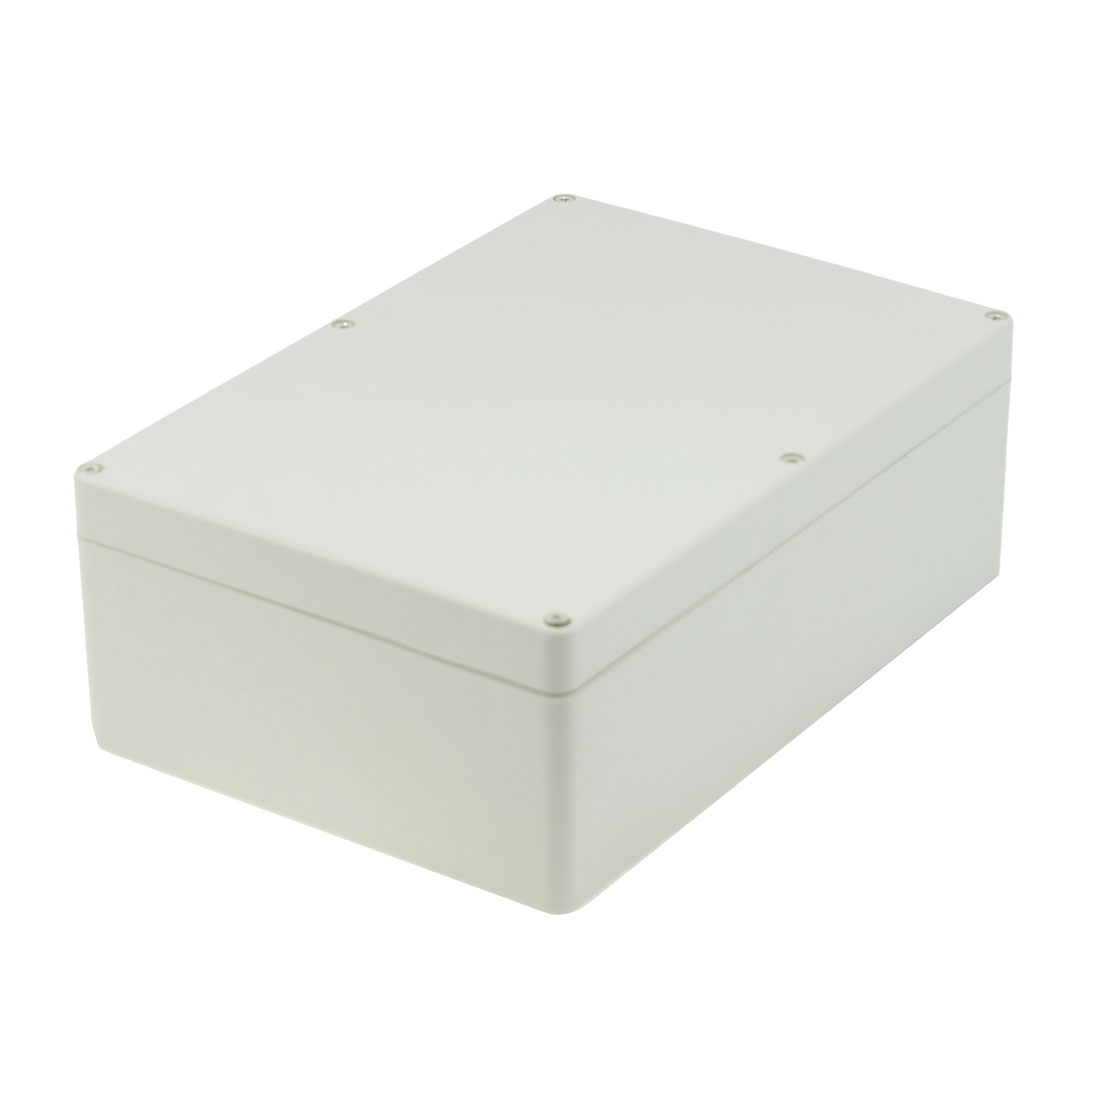 263mm x 184mm x 95mm Plastic Enclosure Case DIY Junction Box